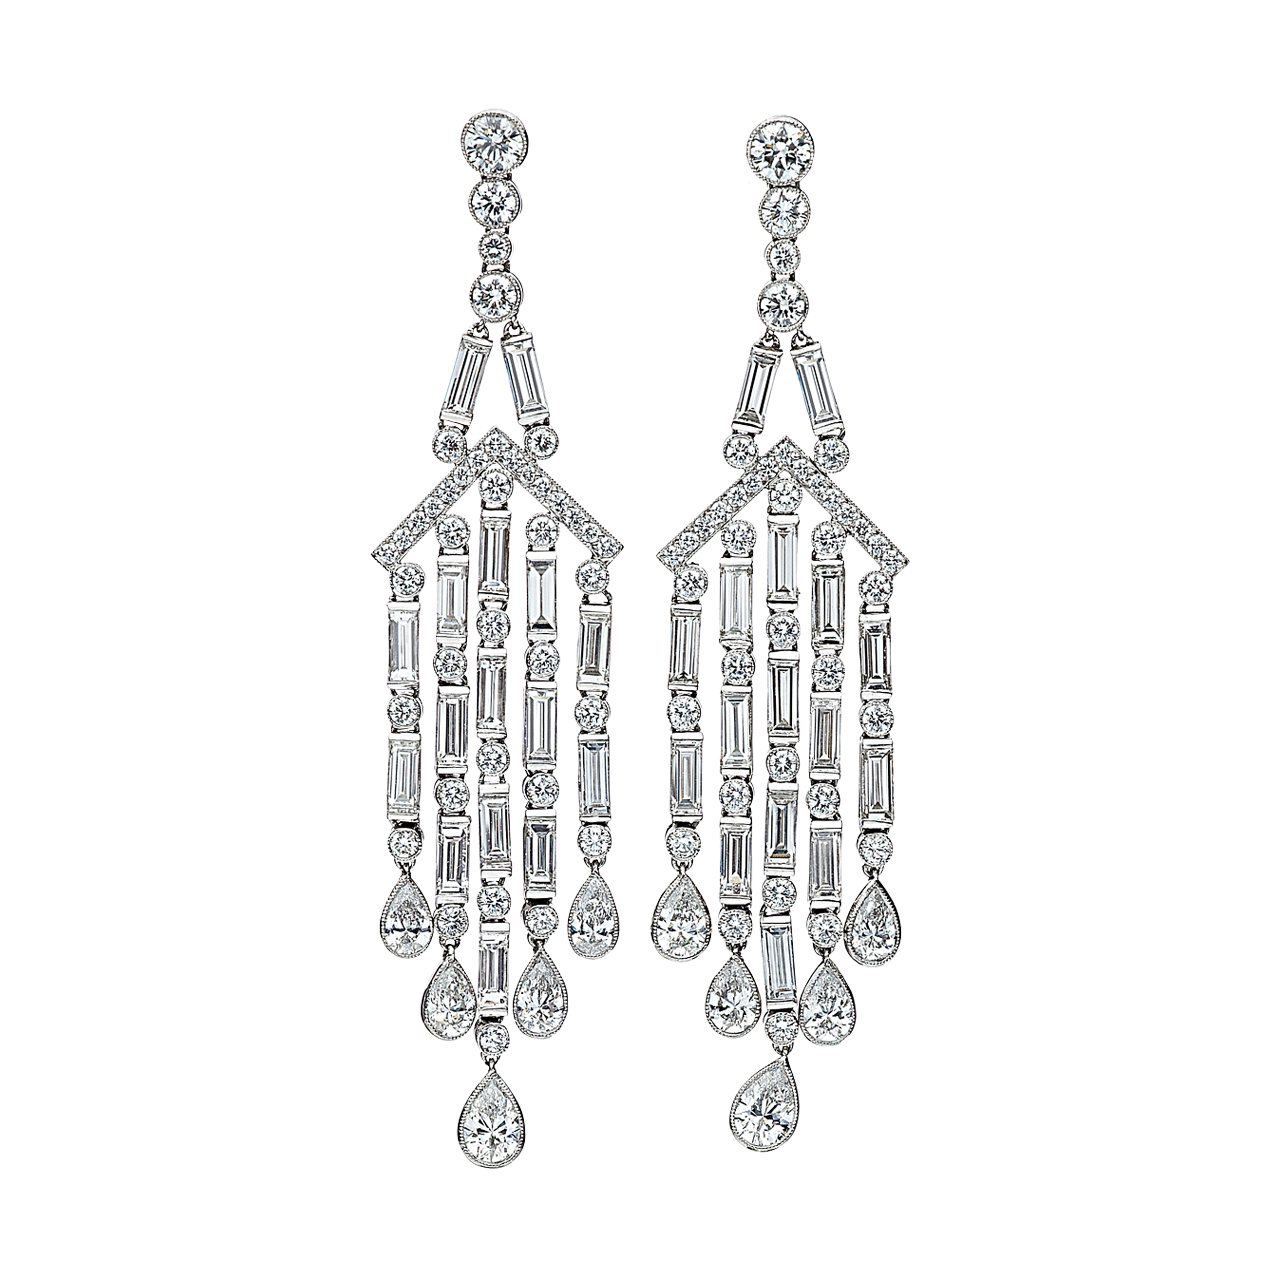 New year new trends what to expect in 2013 hamilton jewelers these decadent designs made from precious stones and metals are extremely comfortable and wearable like our platinum and diamond chandelier earrings arubaitofo Gallery